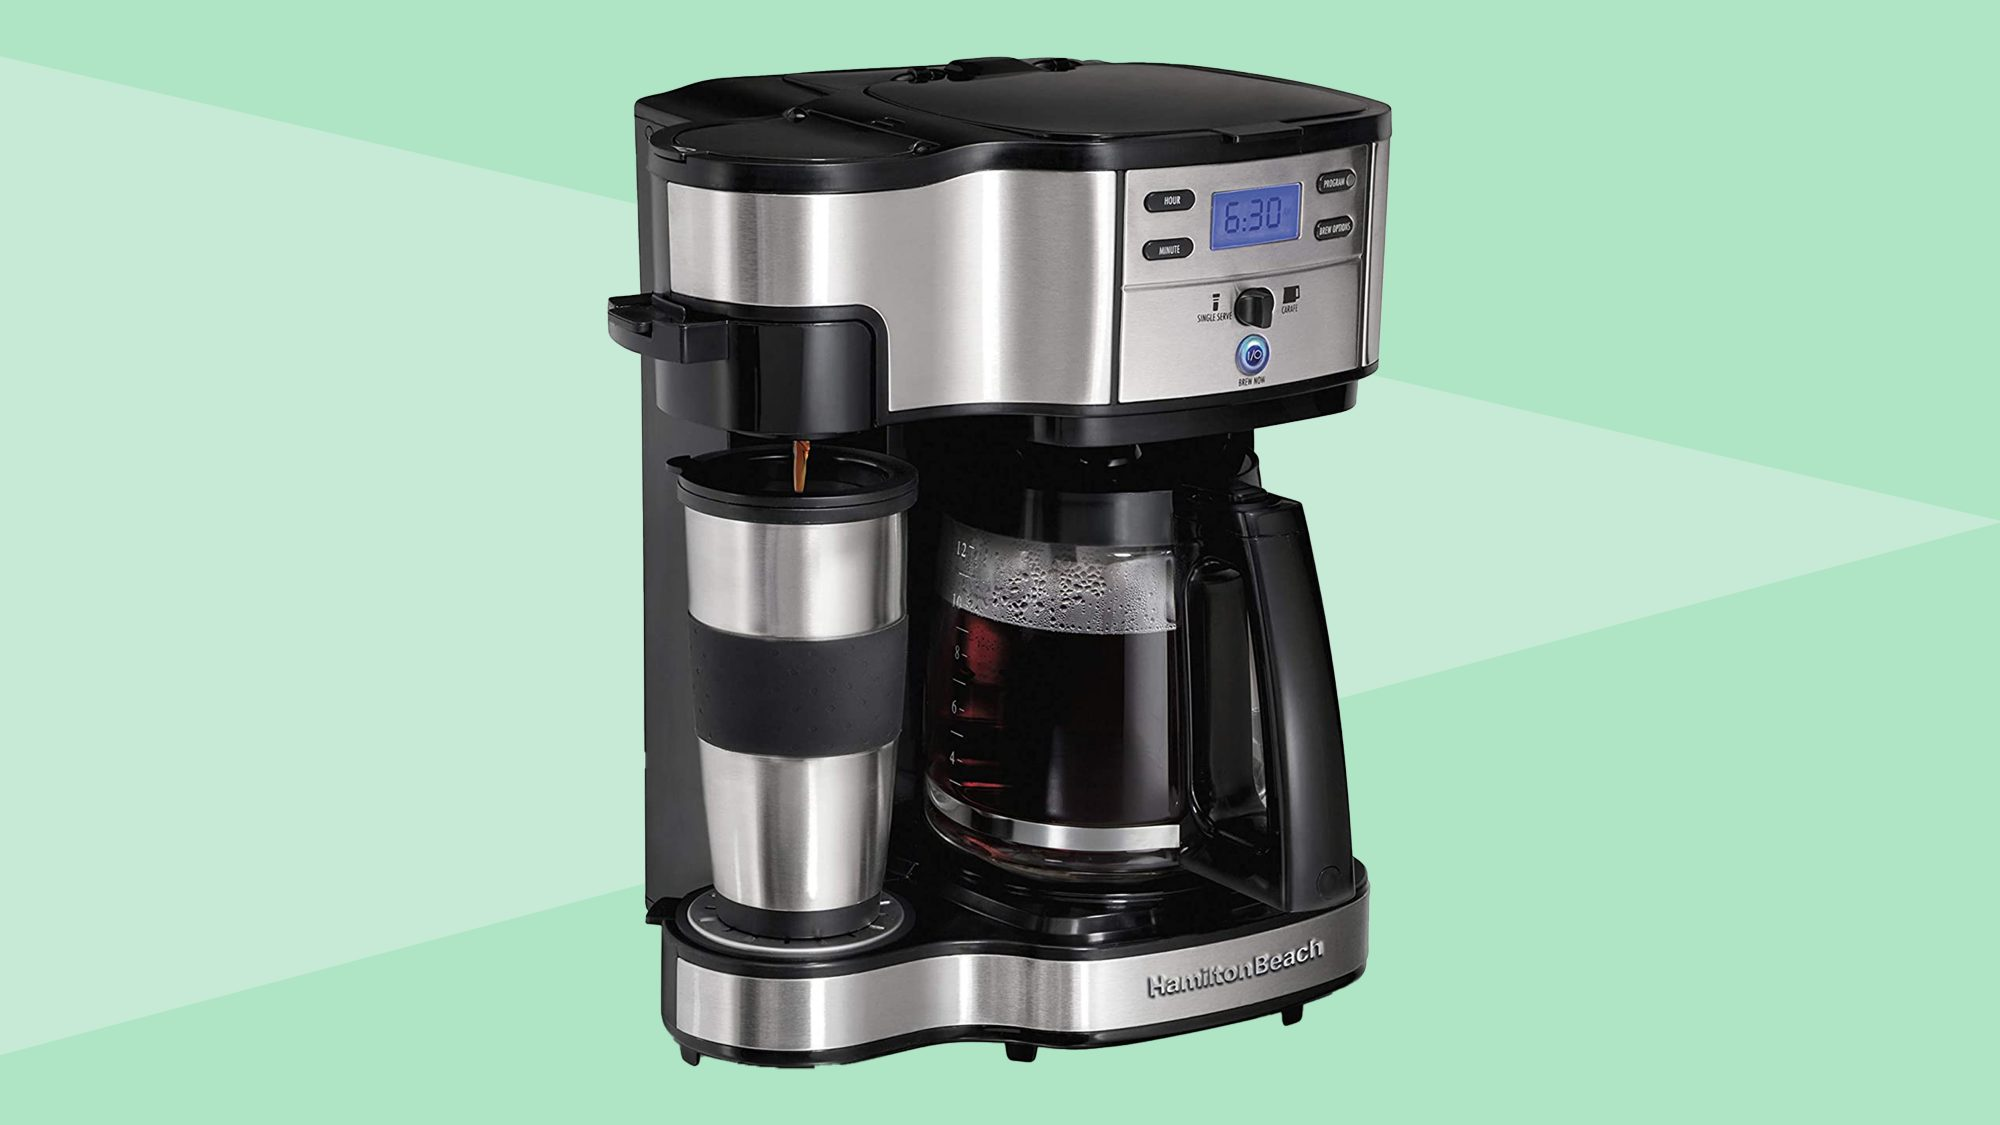 Hamilton Beach 2-Way Brewer Coffee Maker, Single-Serve and 12-Cup Pot